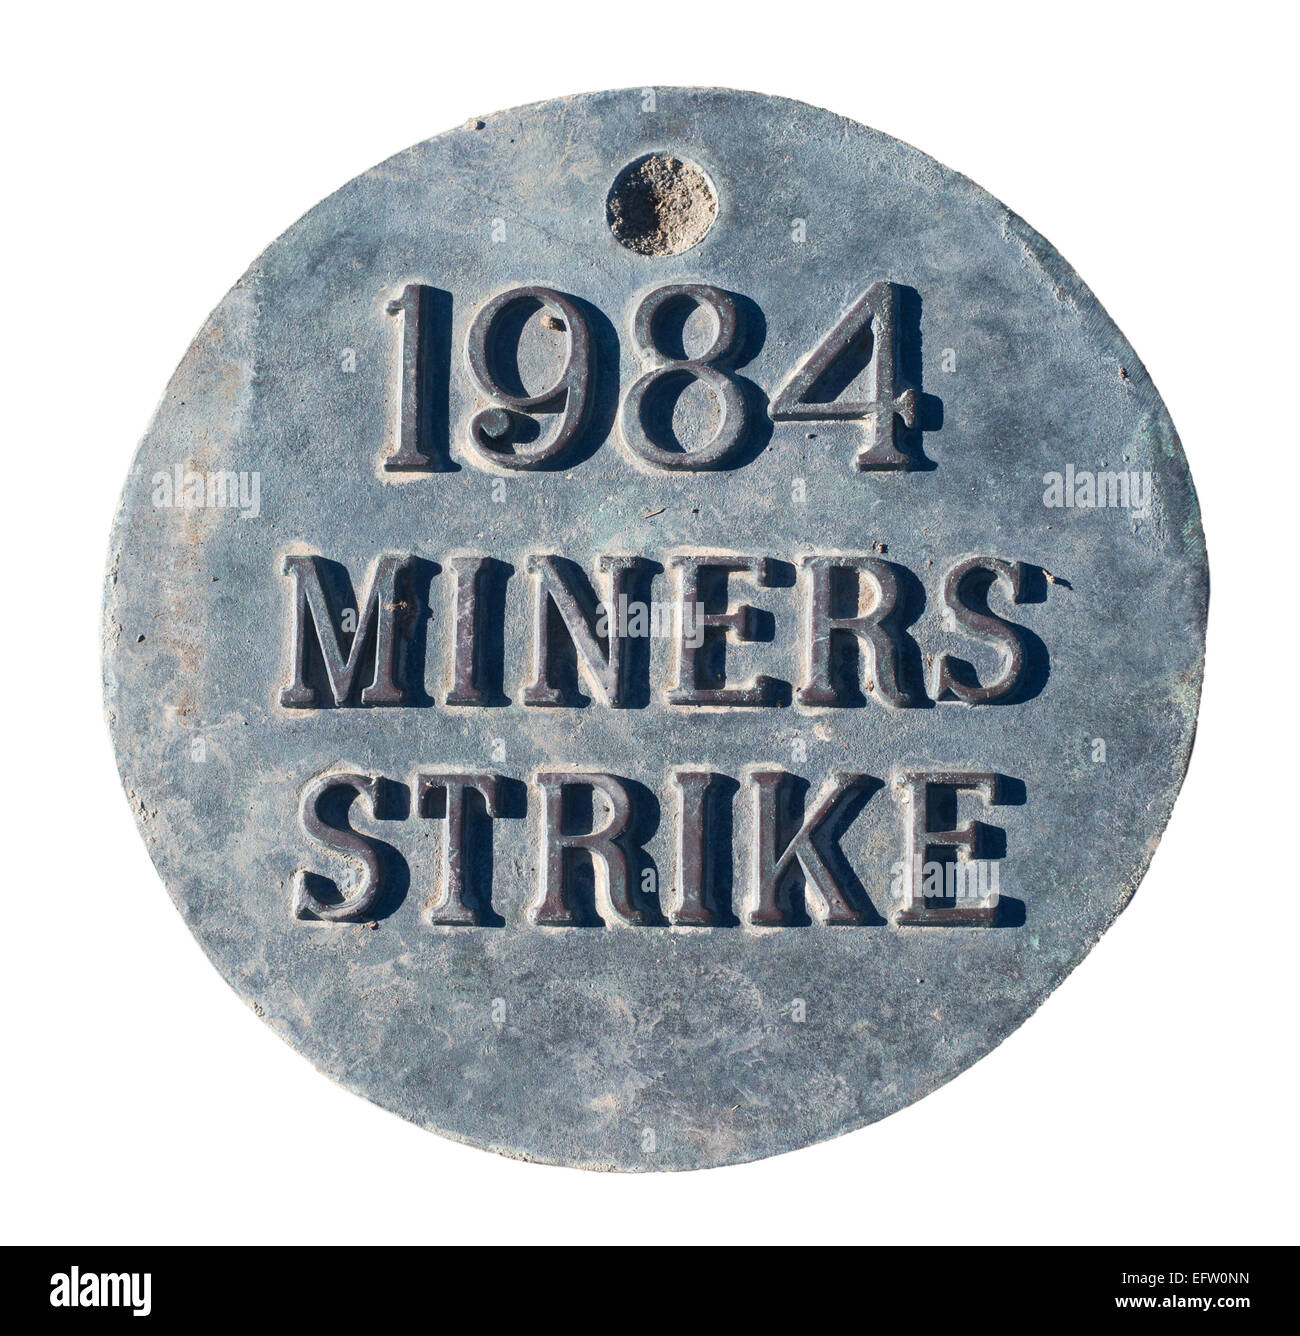 Bronze plaque 1984 miners strike, seen at  Easington Colliery, north east England UK, isolated on  a white background - Stock Image